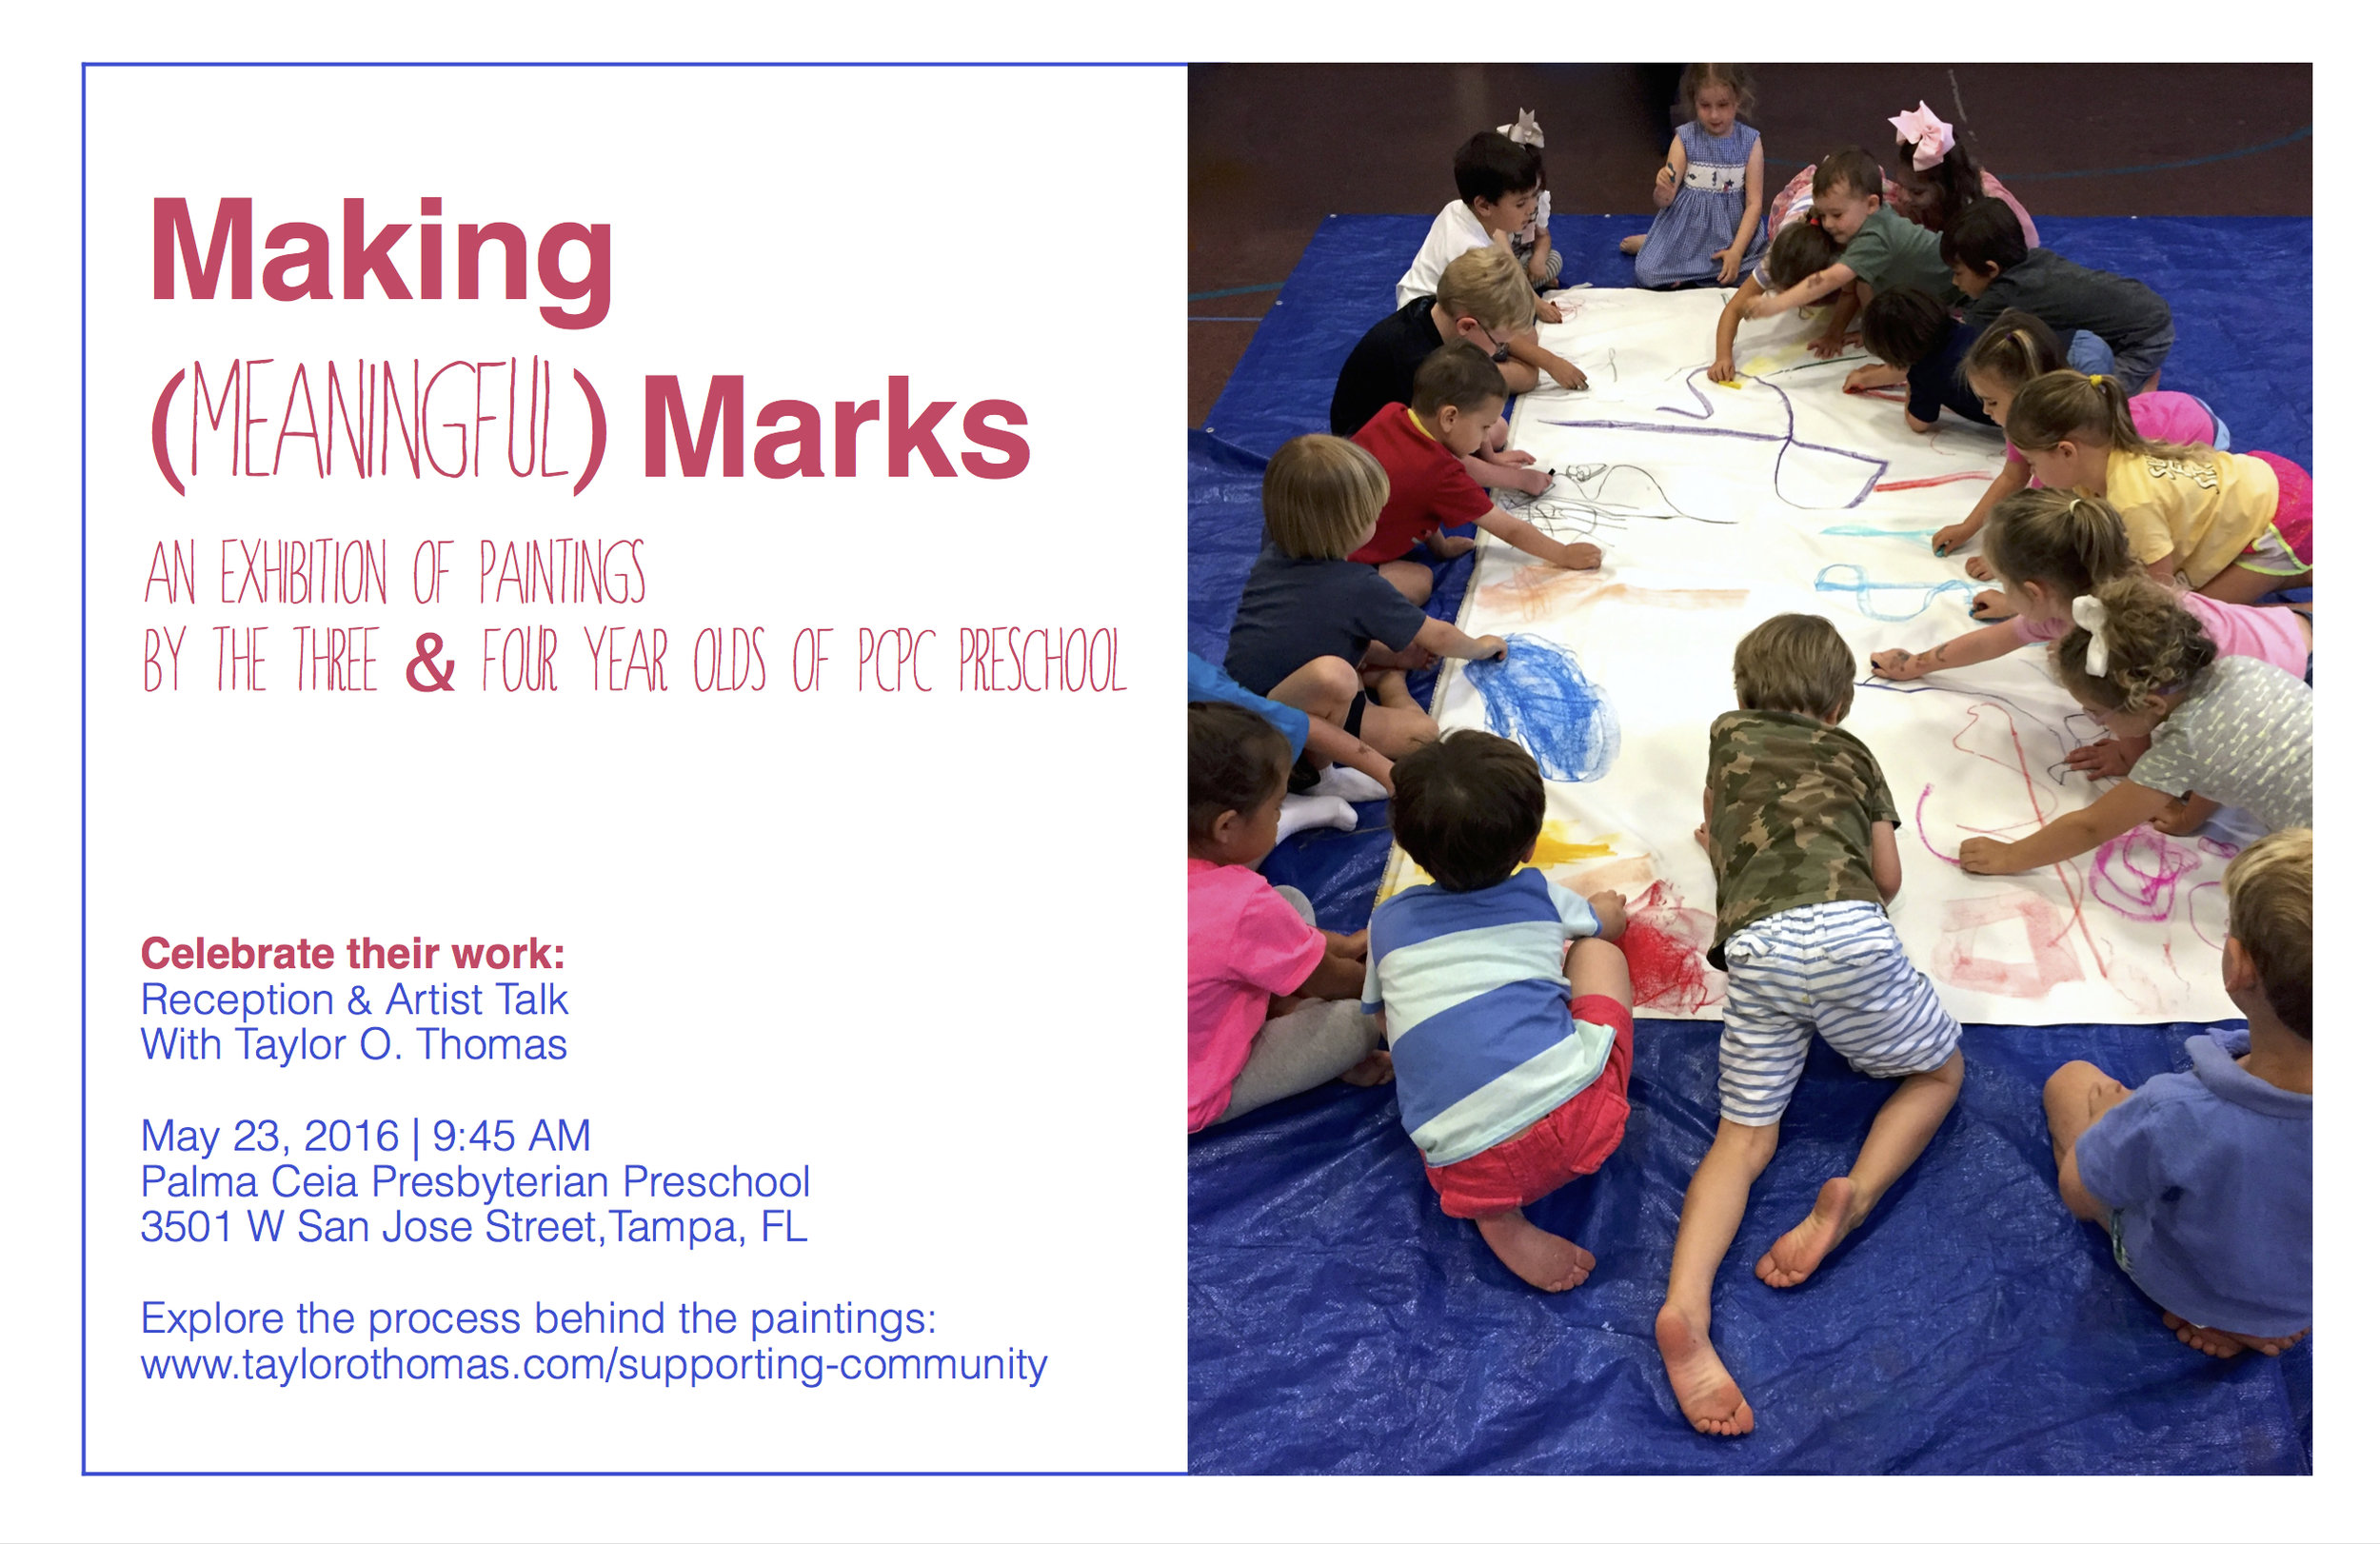 Artist Residency on how Preschoolers are